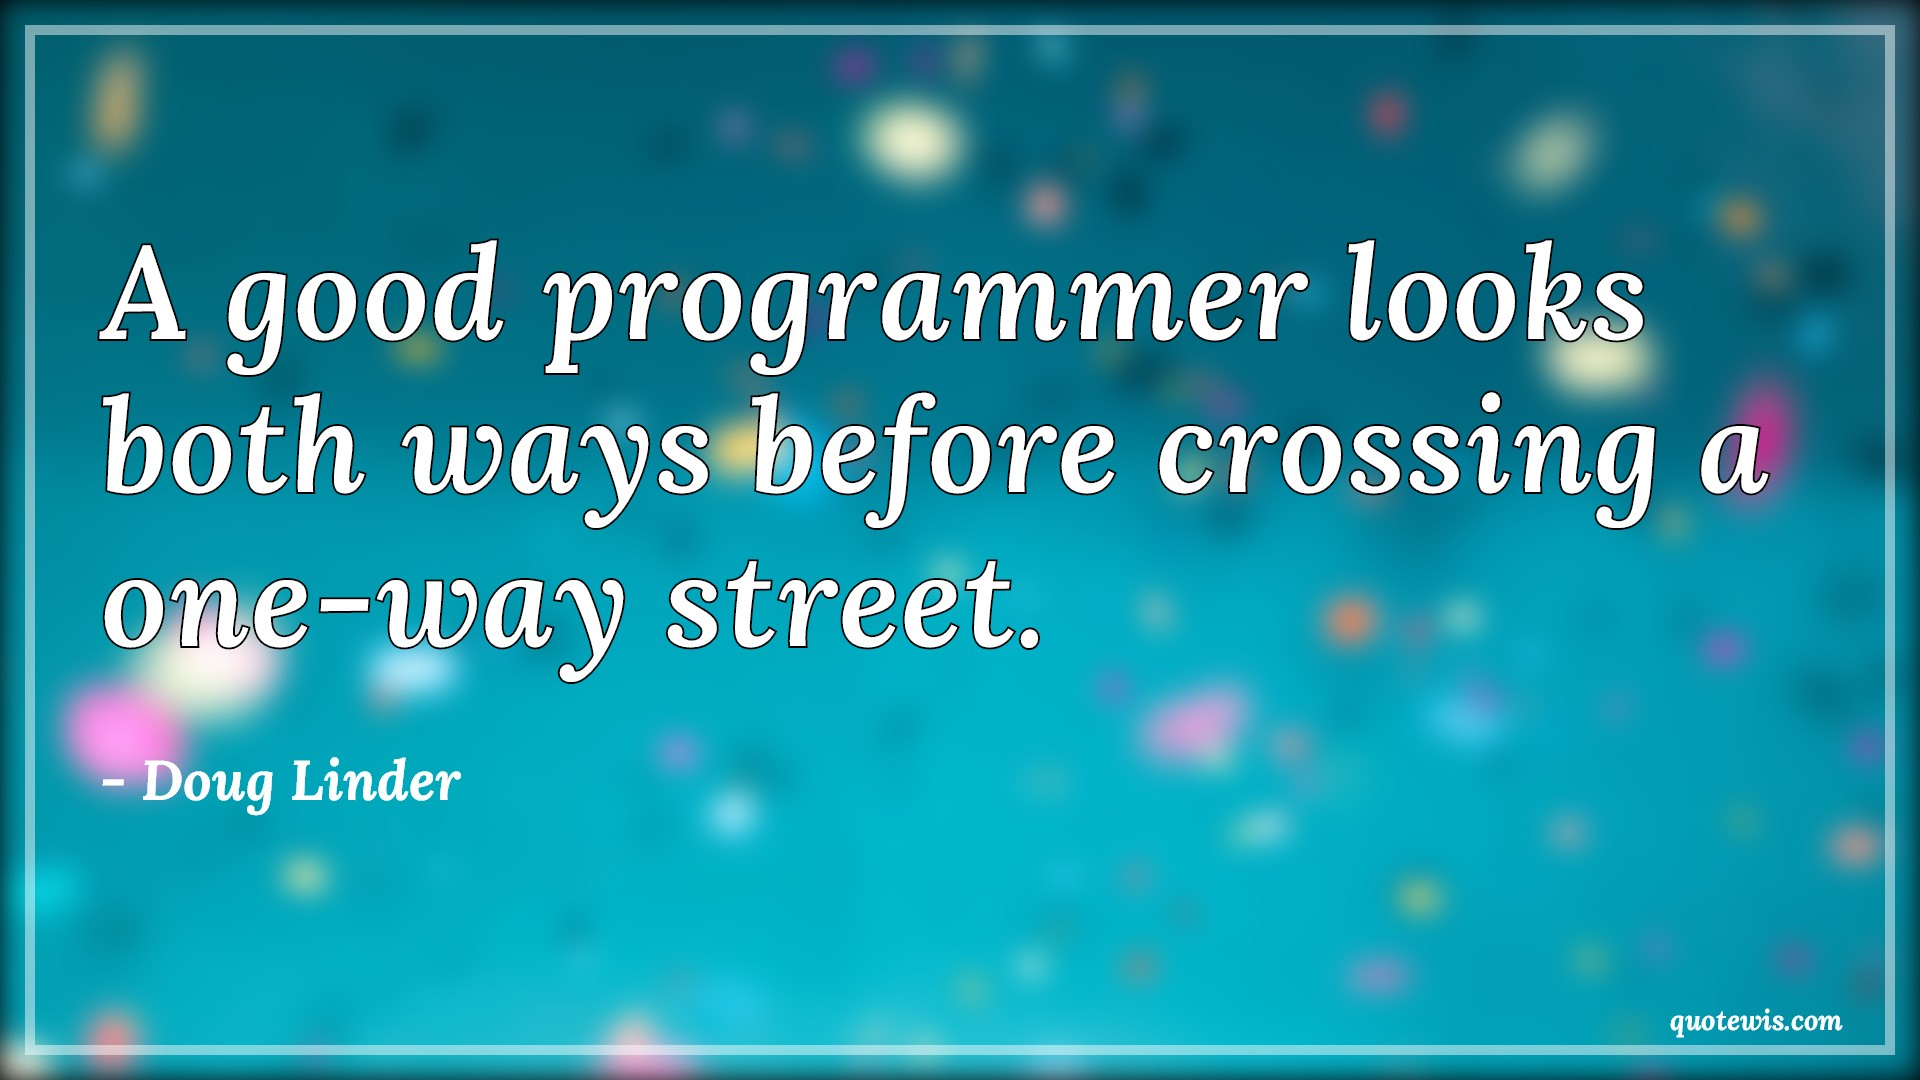 A good programmer looks both ways before crossing a one-way street.